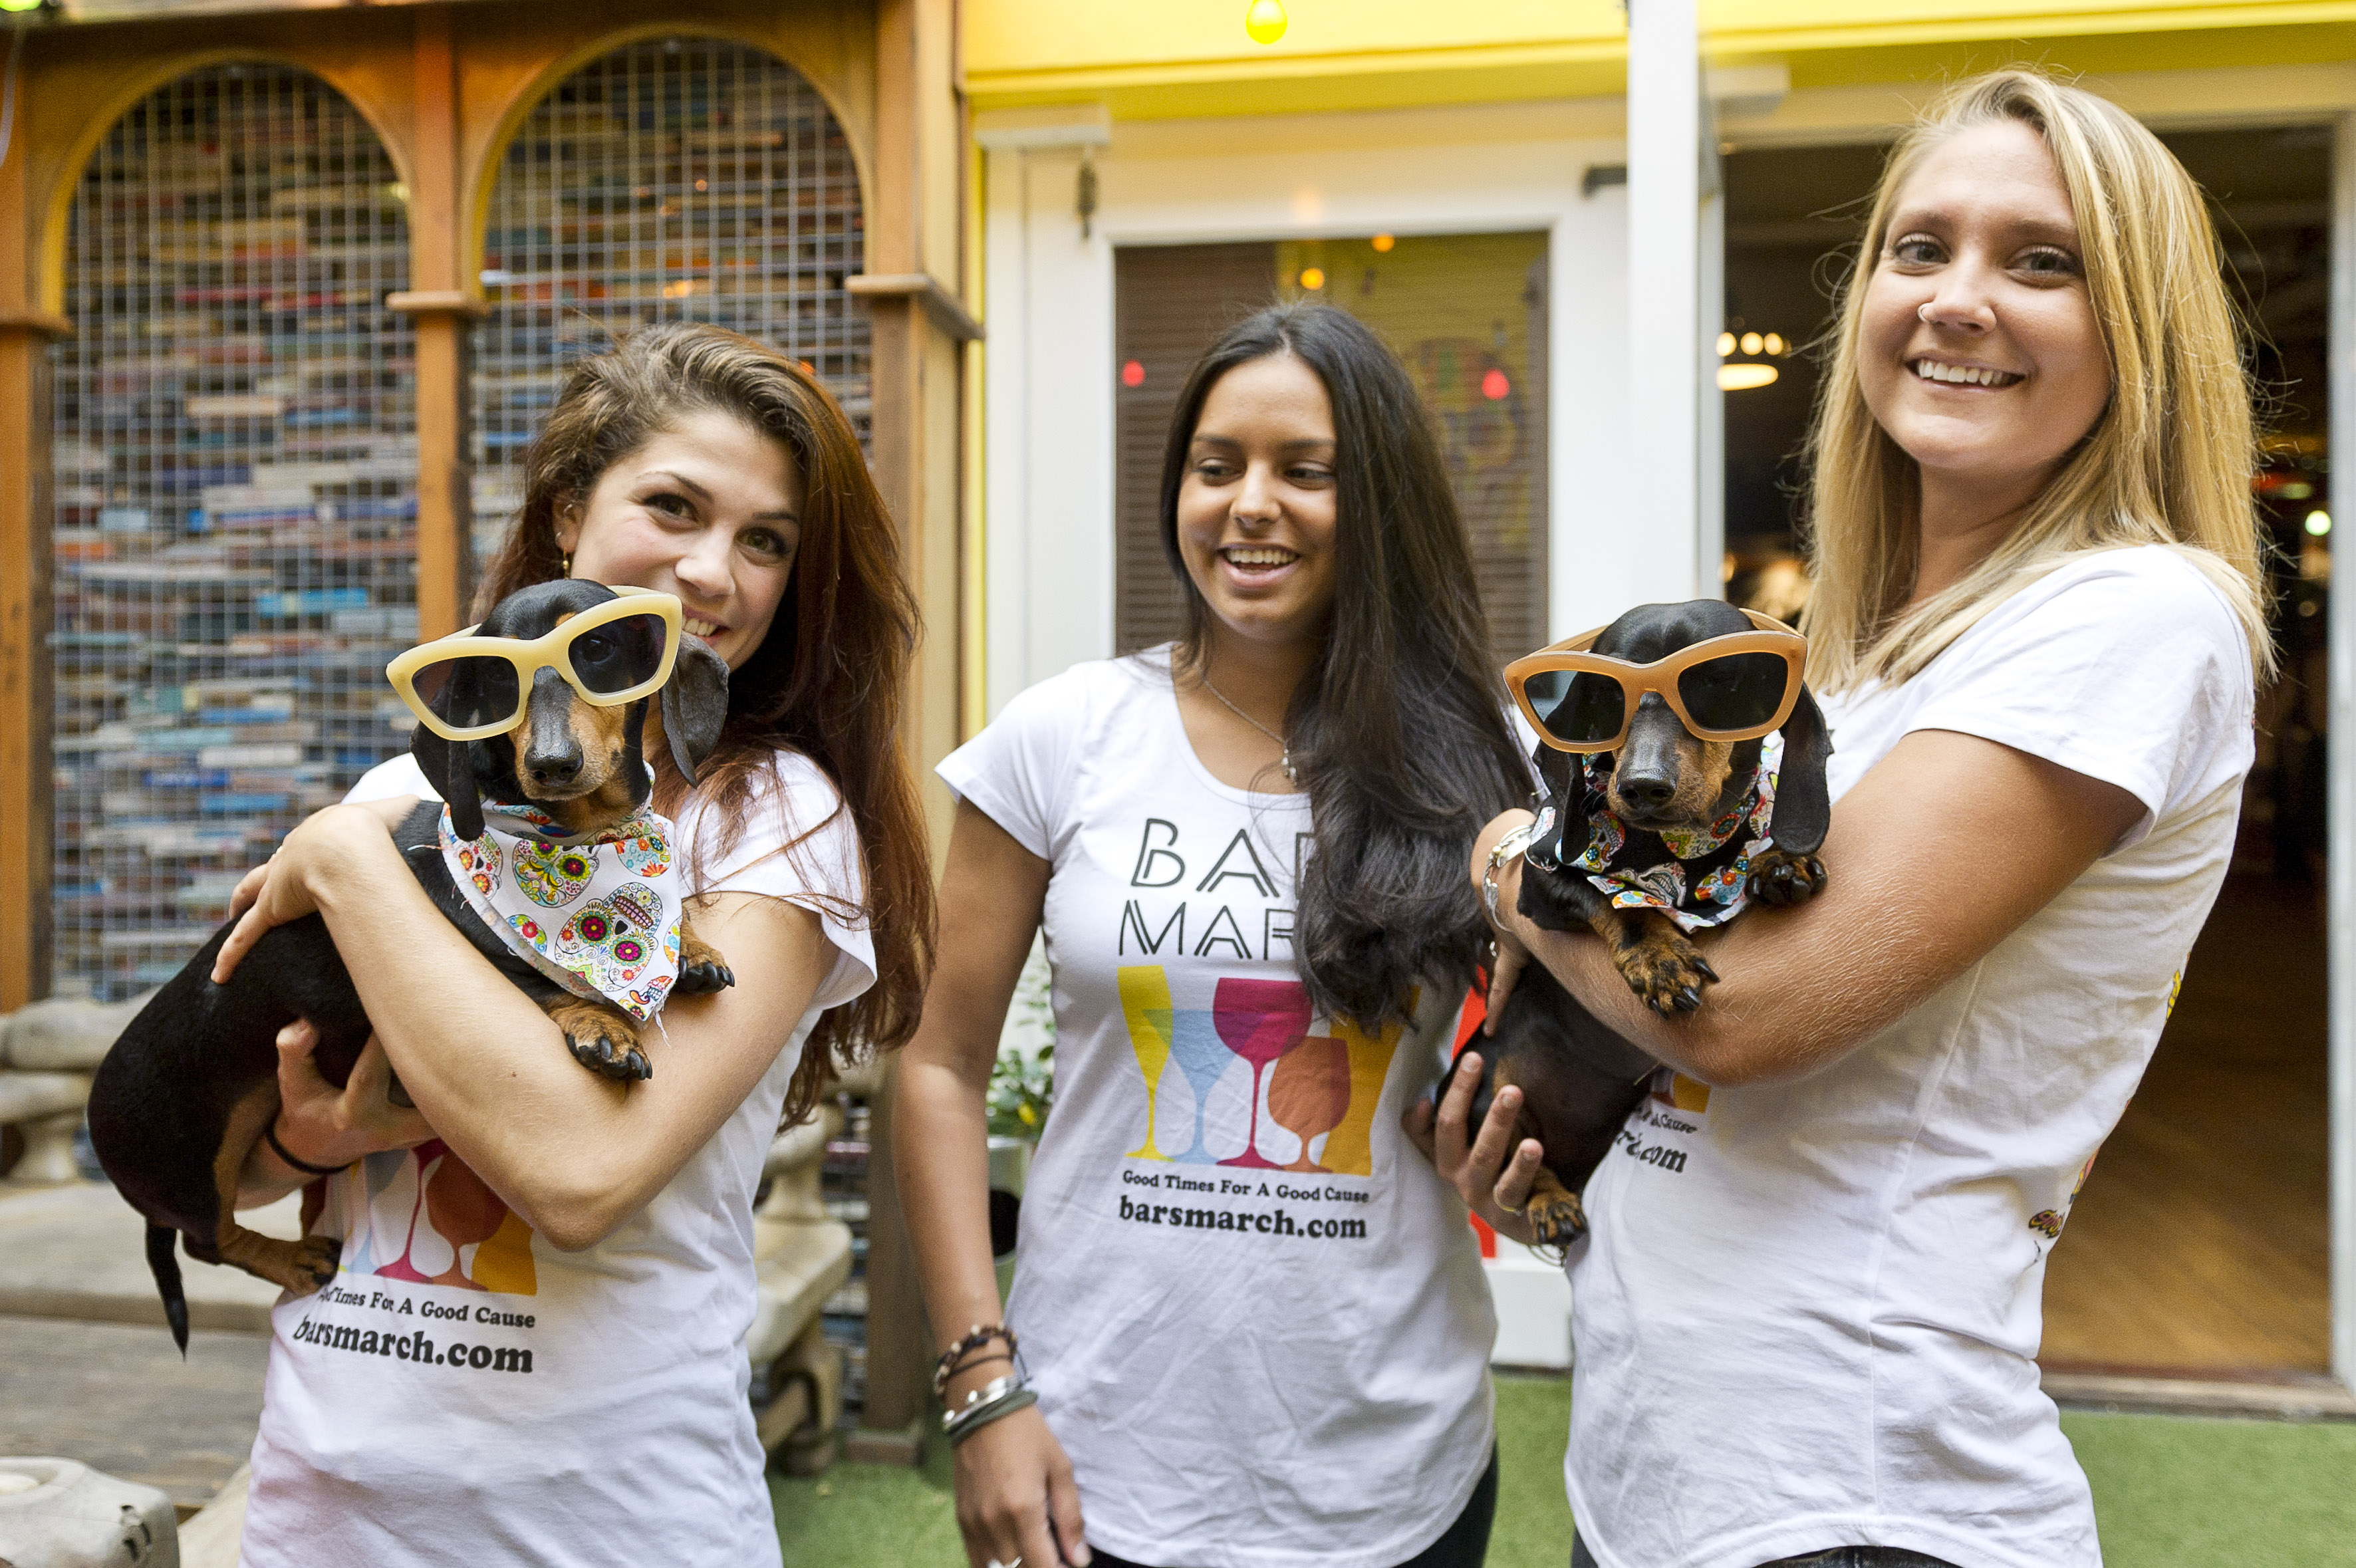 Three women, two are holding sausage dogs with oversizes sunglasses